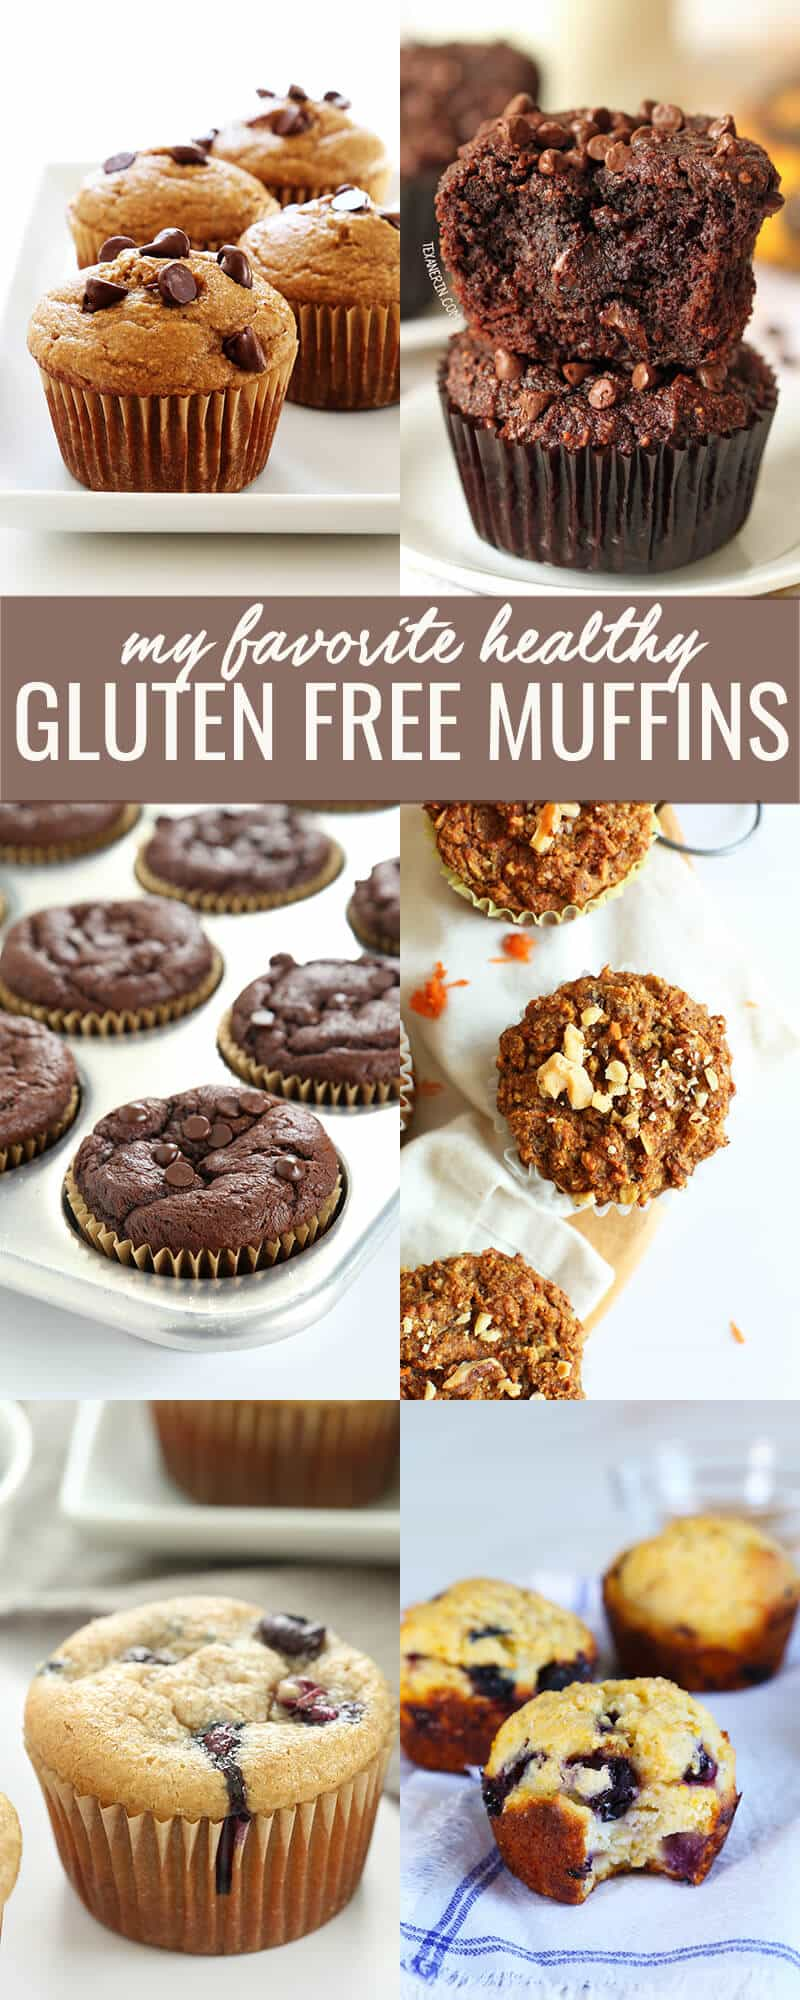 10 gluten free muffins, for everything from blueberry and banana to chocolate and chocolate chip—even Paleo or vegan. We've taken the classic breakfast muffin and made it into a truly healthy gluten free breakfast! https://glutenfreeonashoestring.com/